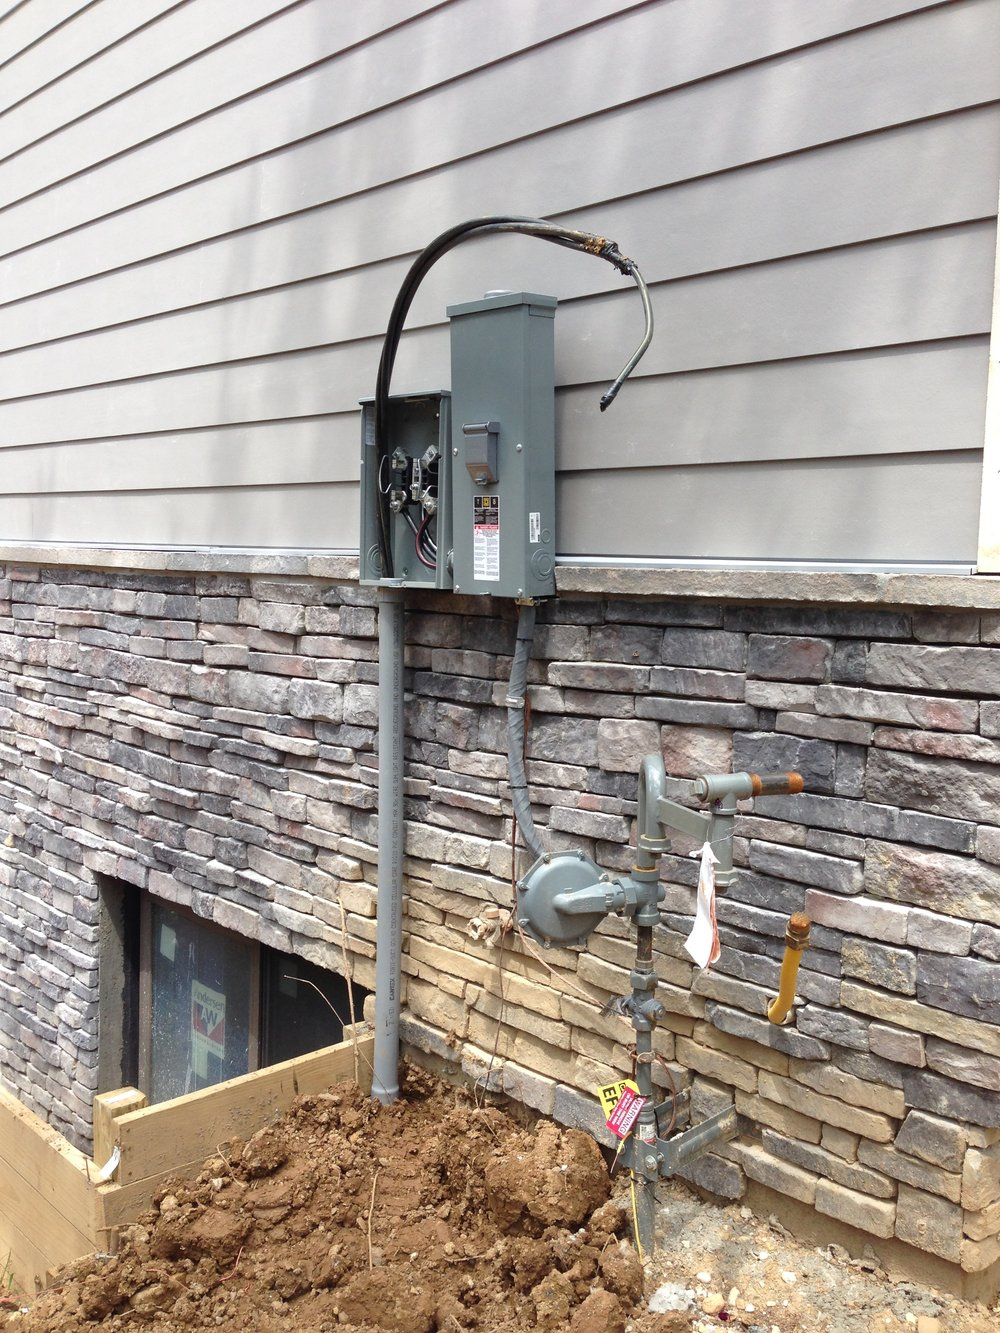 The electrical wiring is installed and we are ready for a meter!